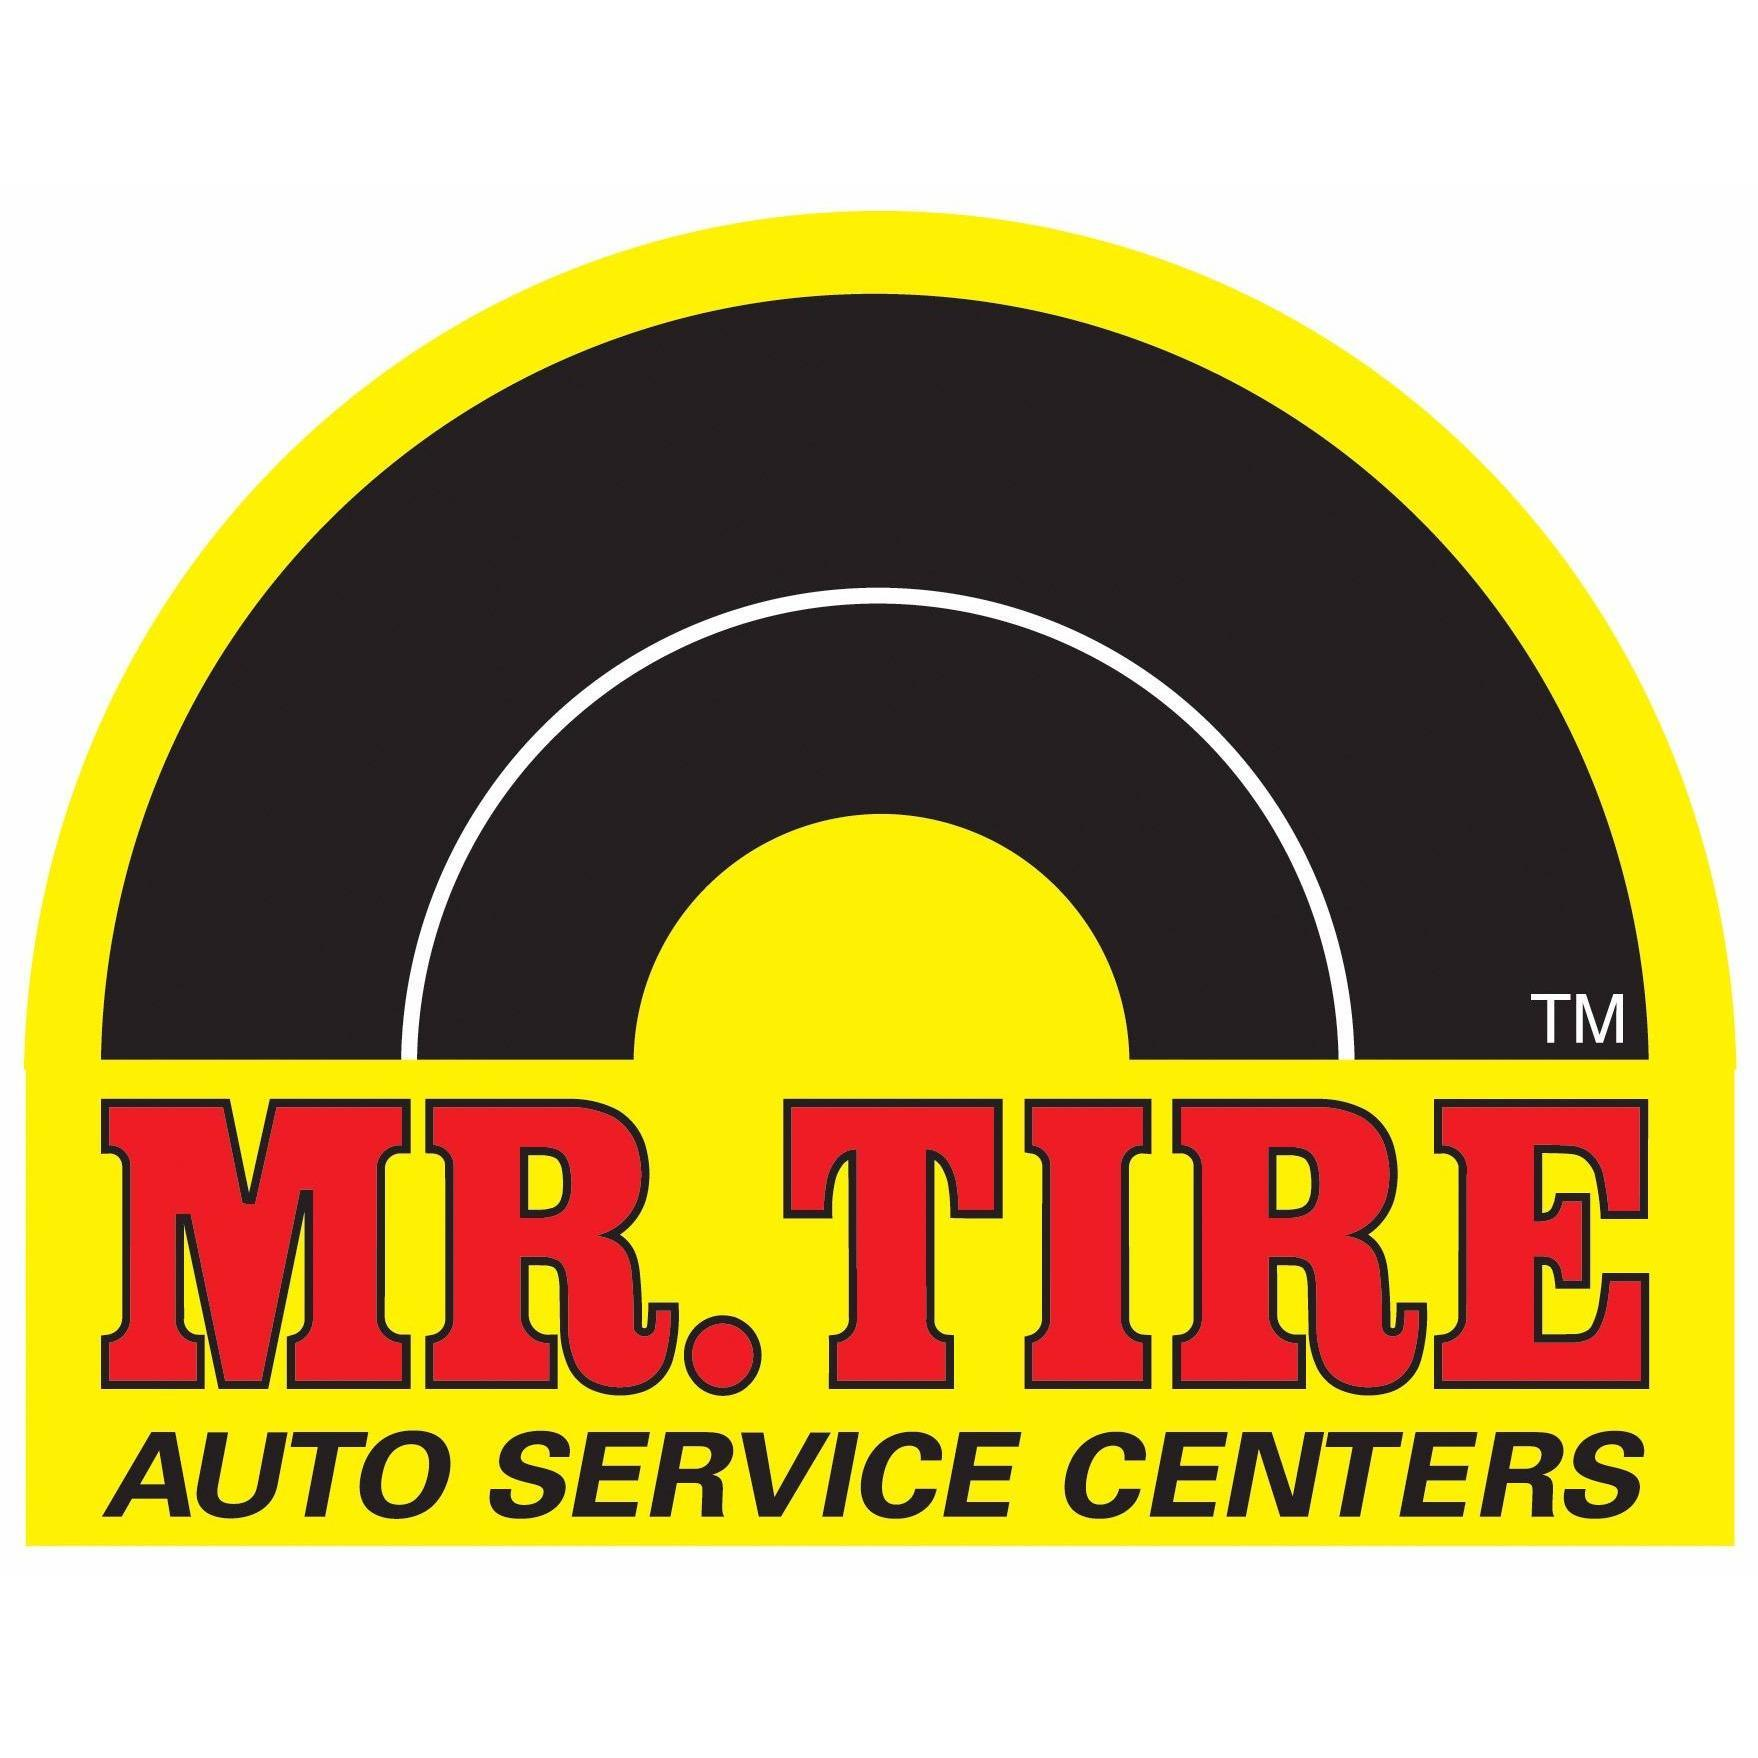 Mr Tire Auto Service Centers - Raleigh, NC - Tires & Wheel Alignment